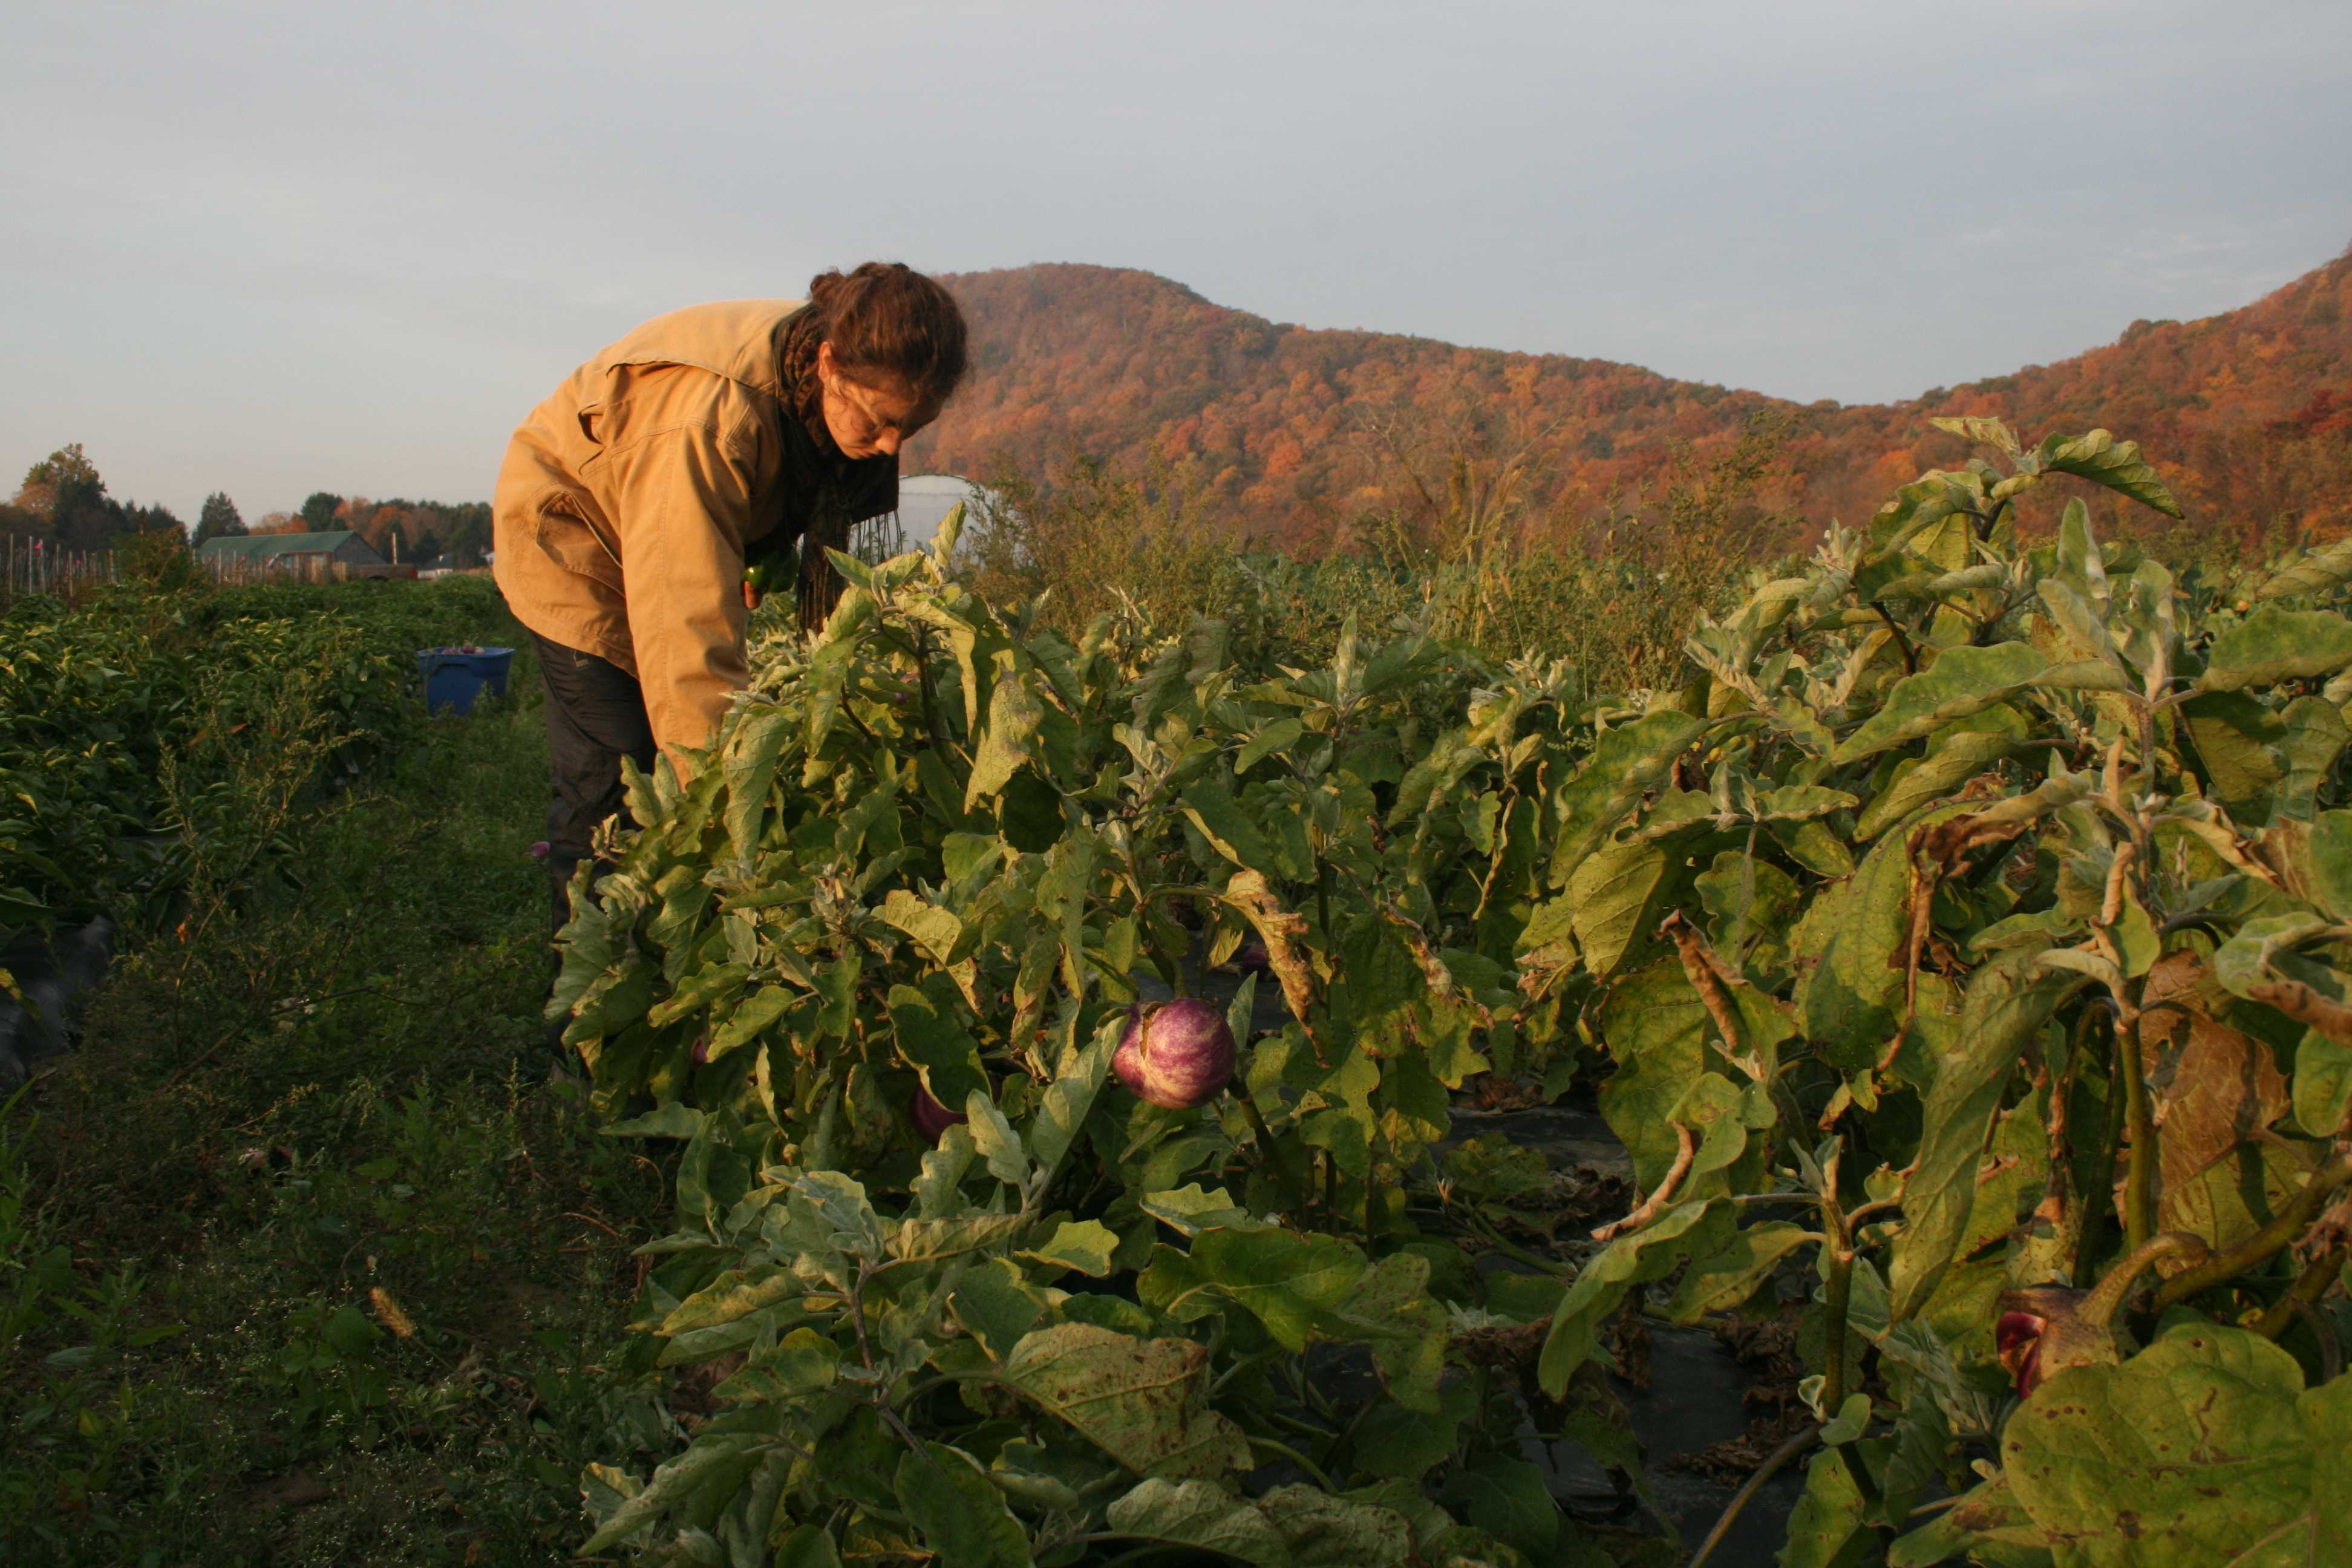 Photos of the Student Farming Enterprise